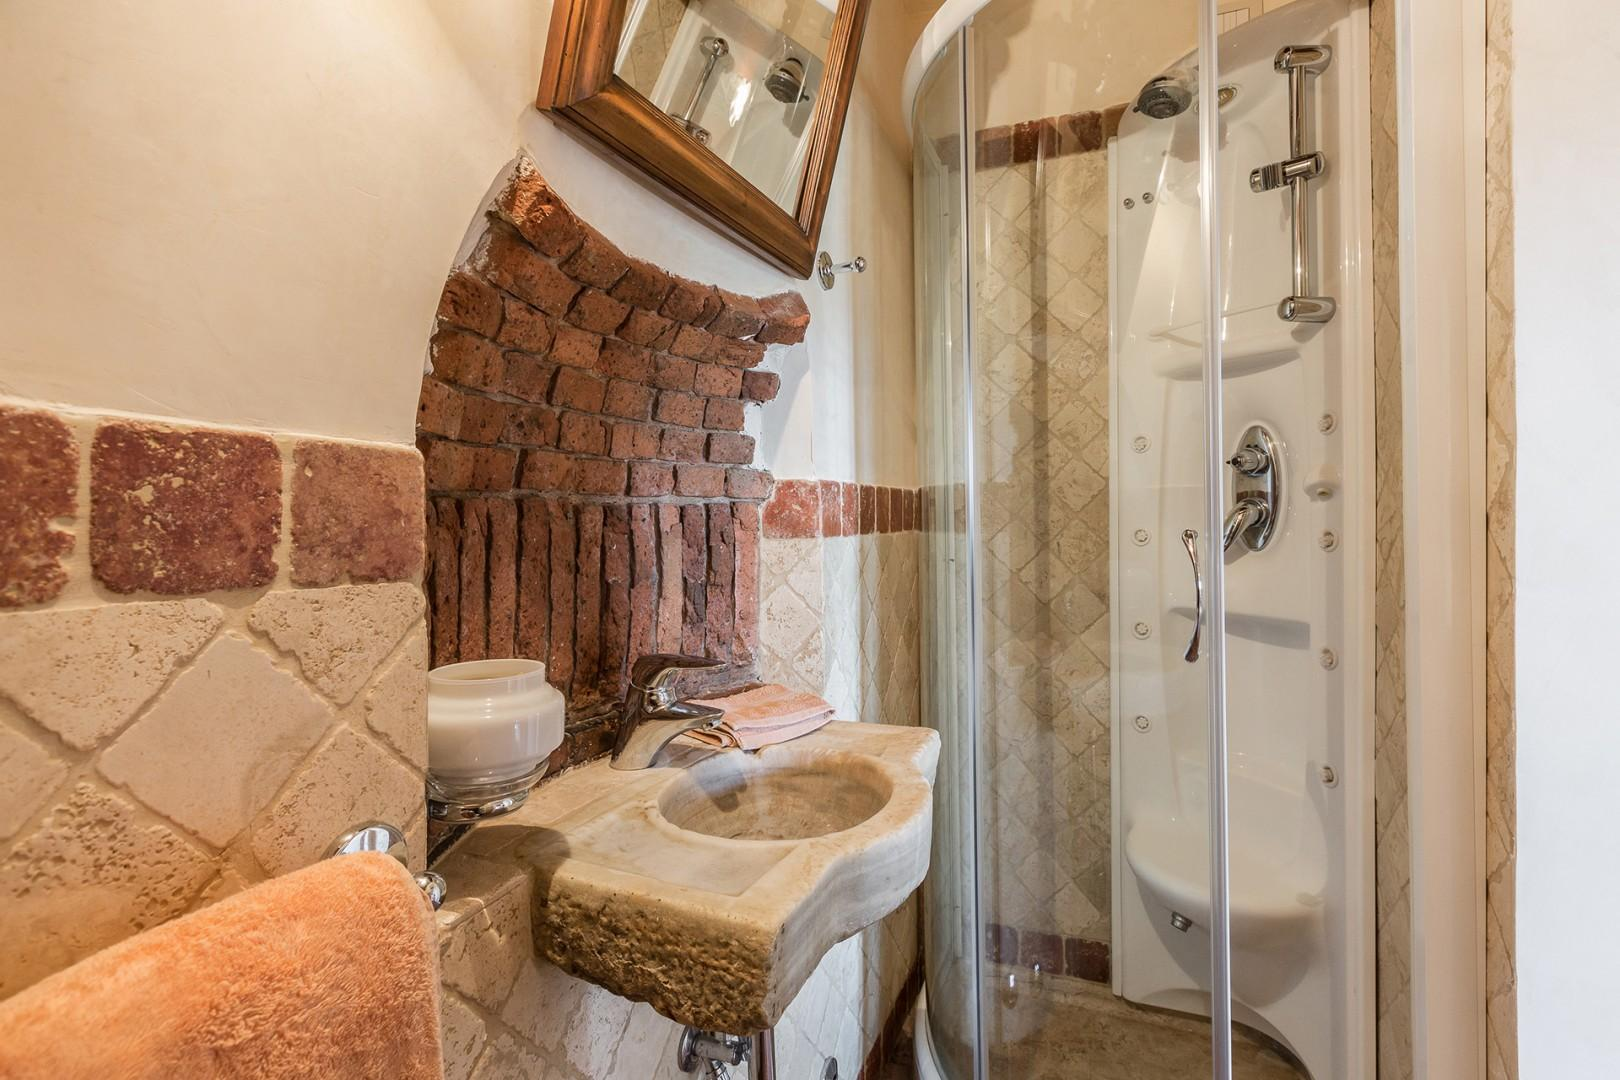 This bathroom adjoins the small dining room. Interesting brickwork above sink.